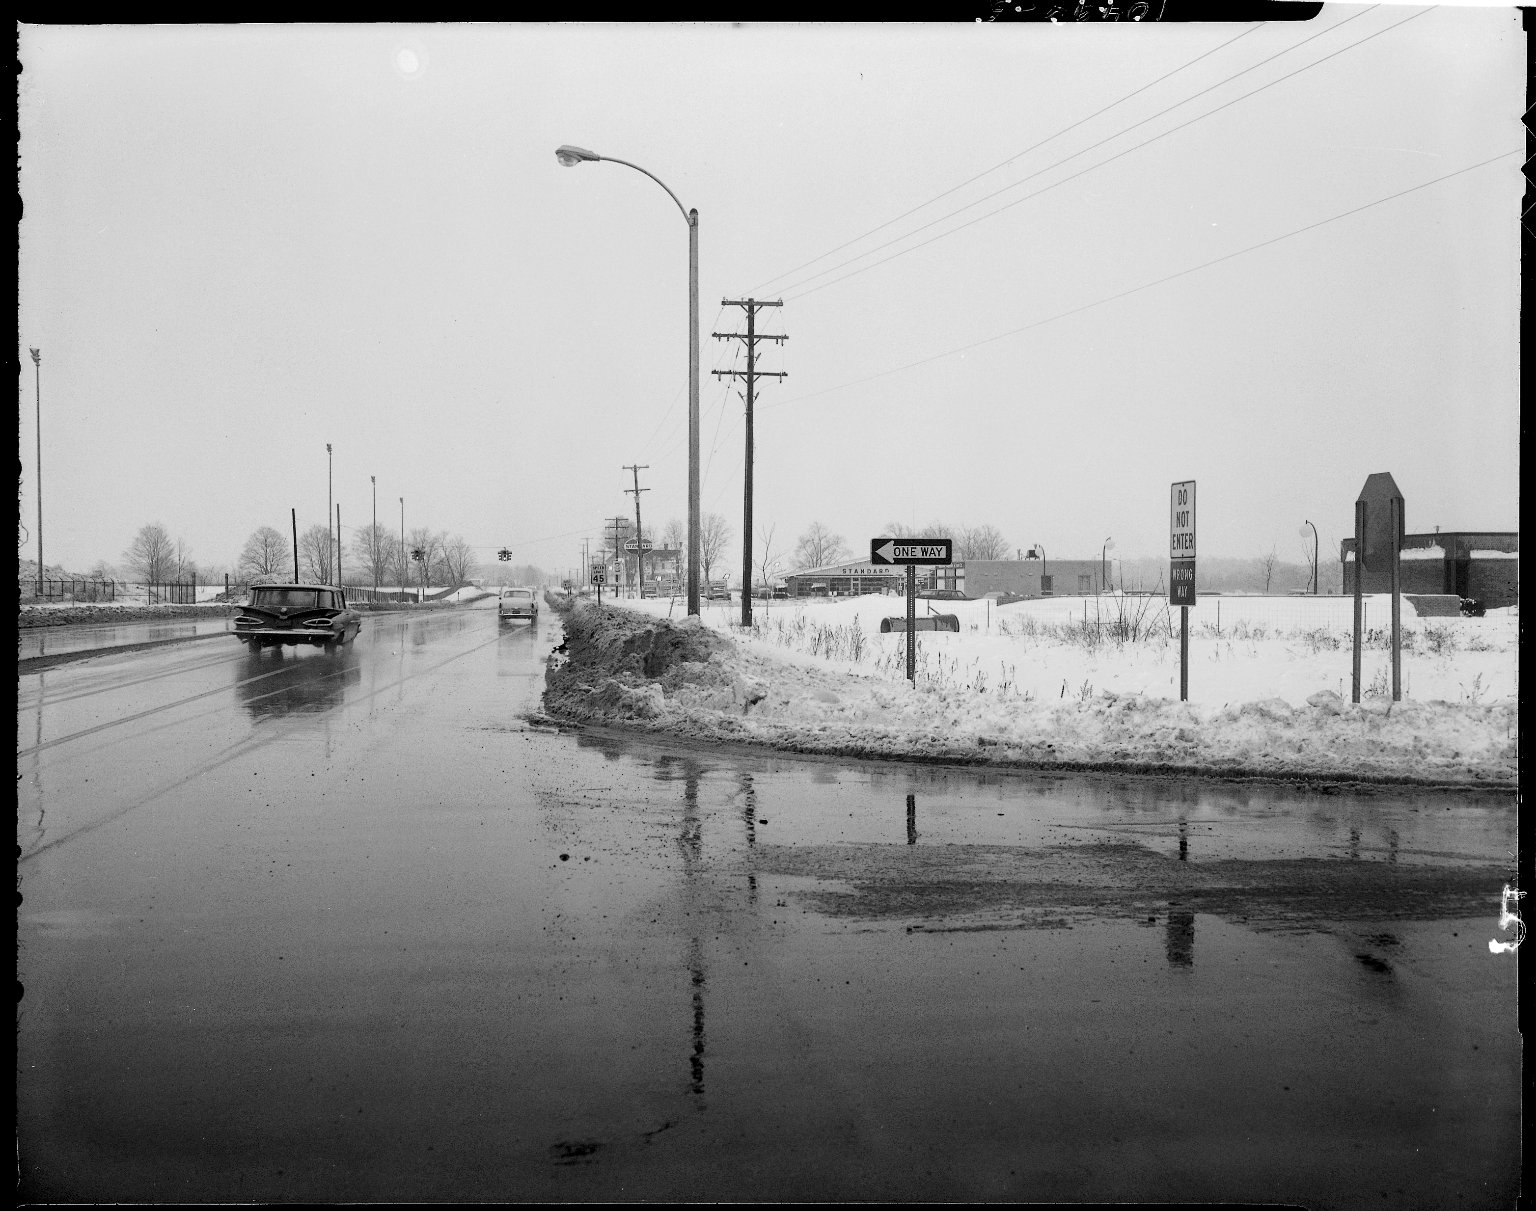 Winter street scene, Sprinkle Road, near I-94 entrance ramp, near Dick Kuehl Standard Service, 3530 Spring Road, Kalamazoo